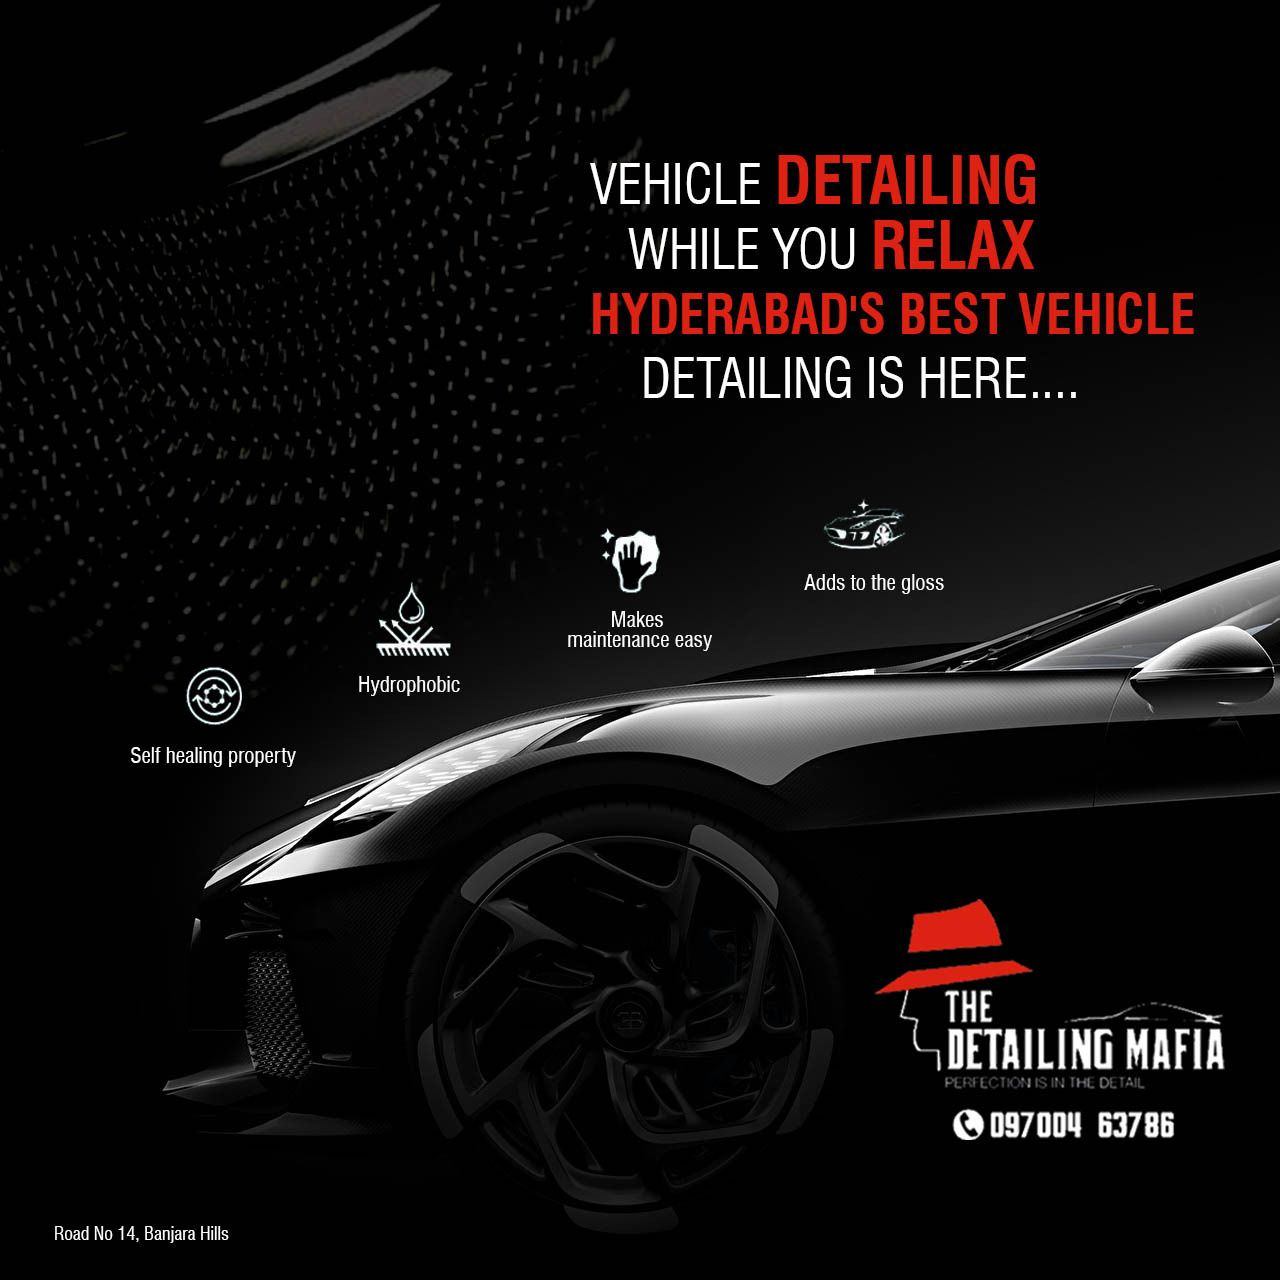 Get The Unbeatable Shine And Protection With Our Detailing Services Rejuvenate That New Car Feel Our Famous Paint Protectio Paint Protection New Cars Mafia